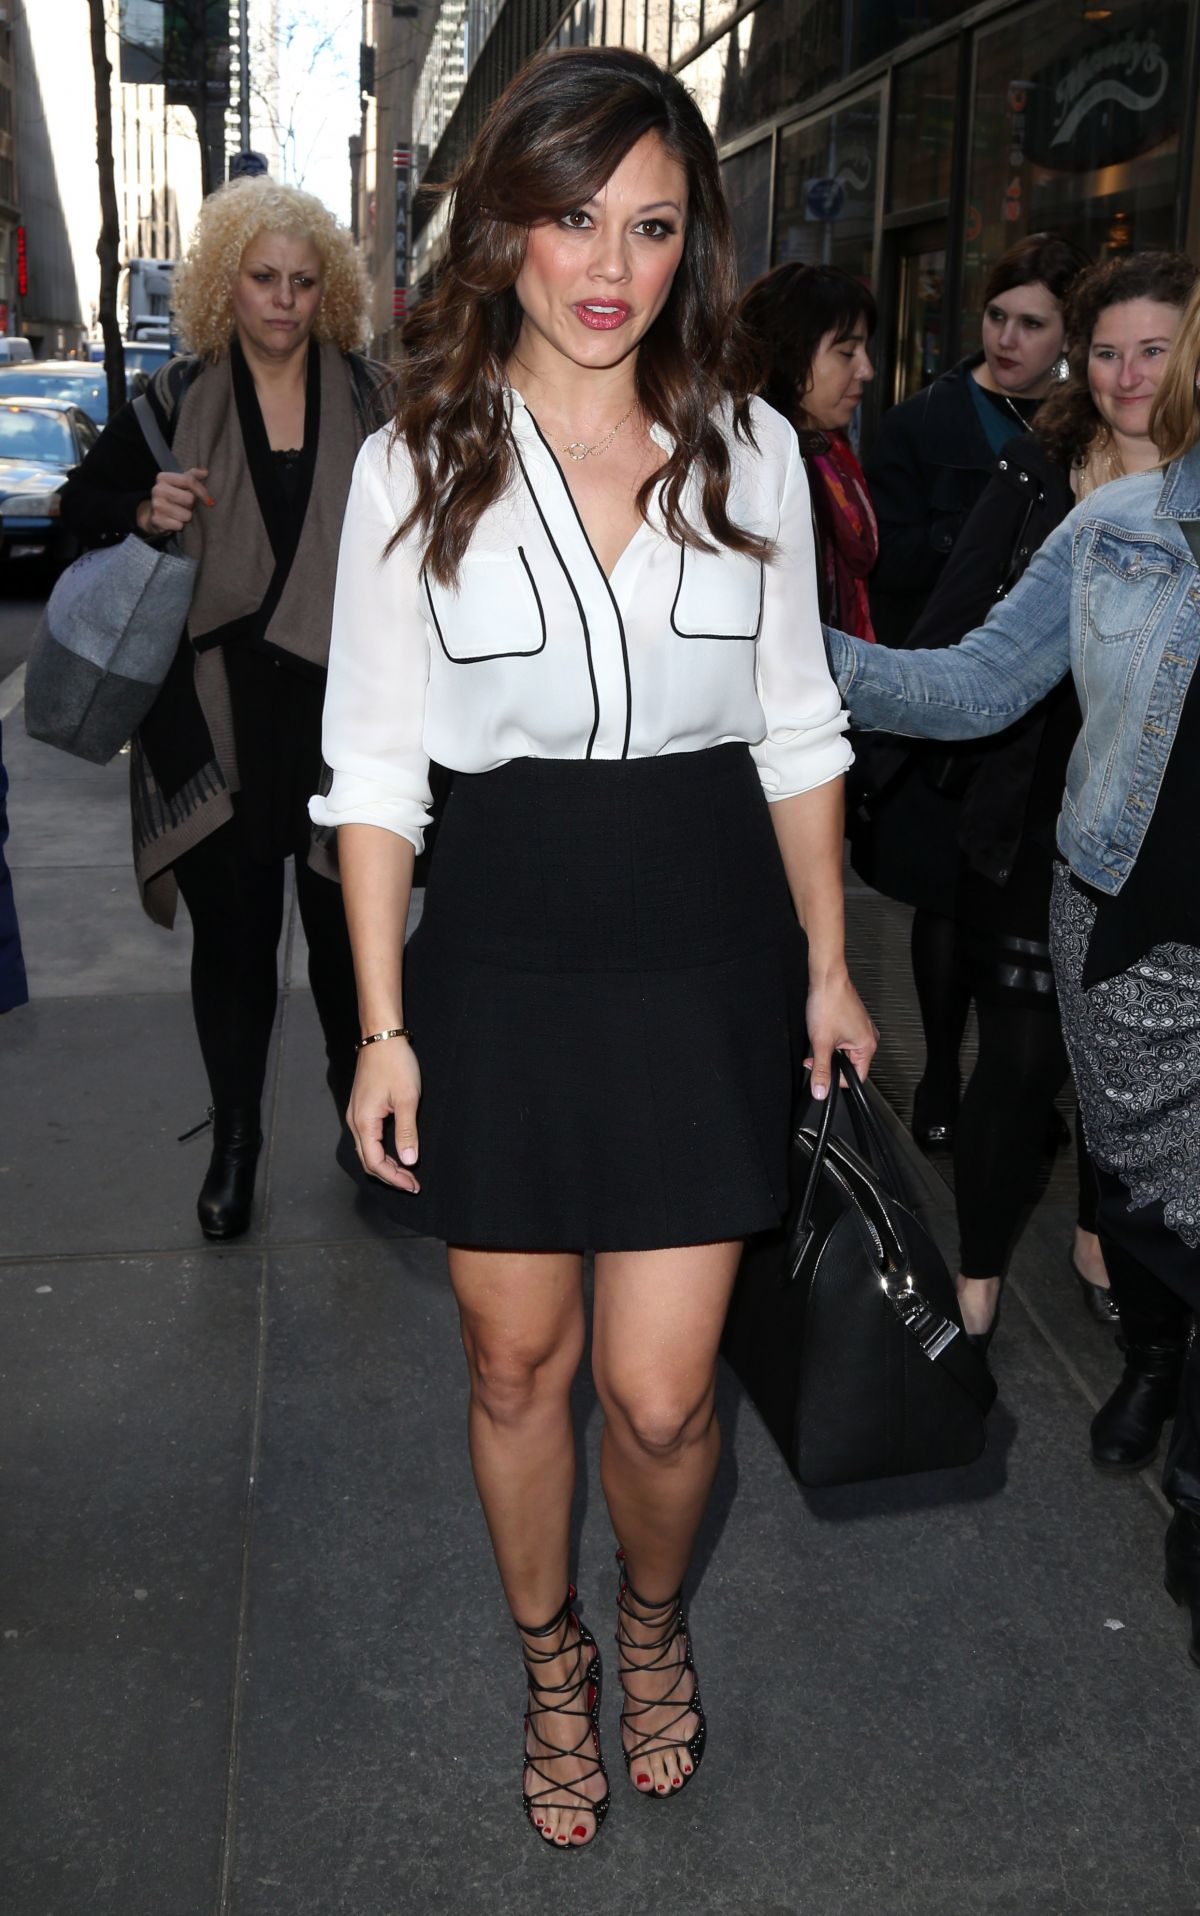 VANESSA LACHEY at Today Show in New York 04/28/2015